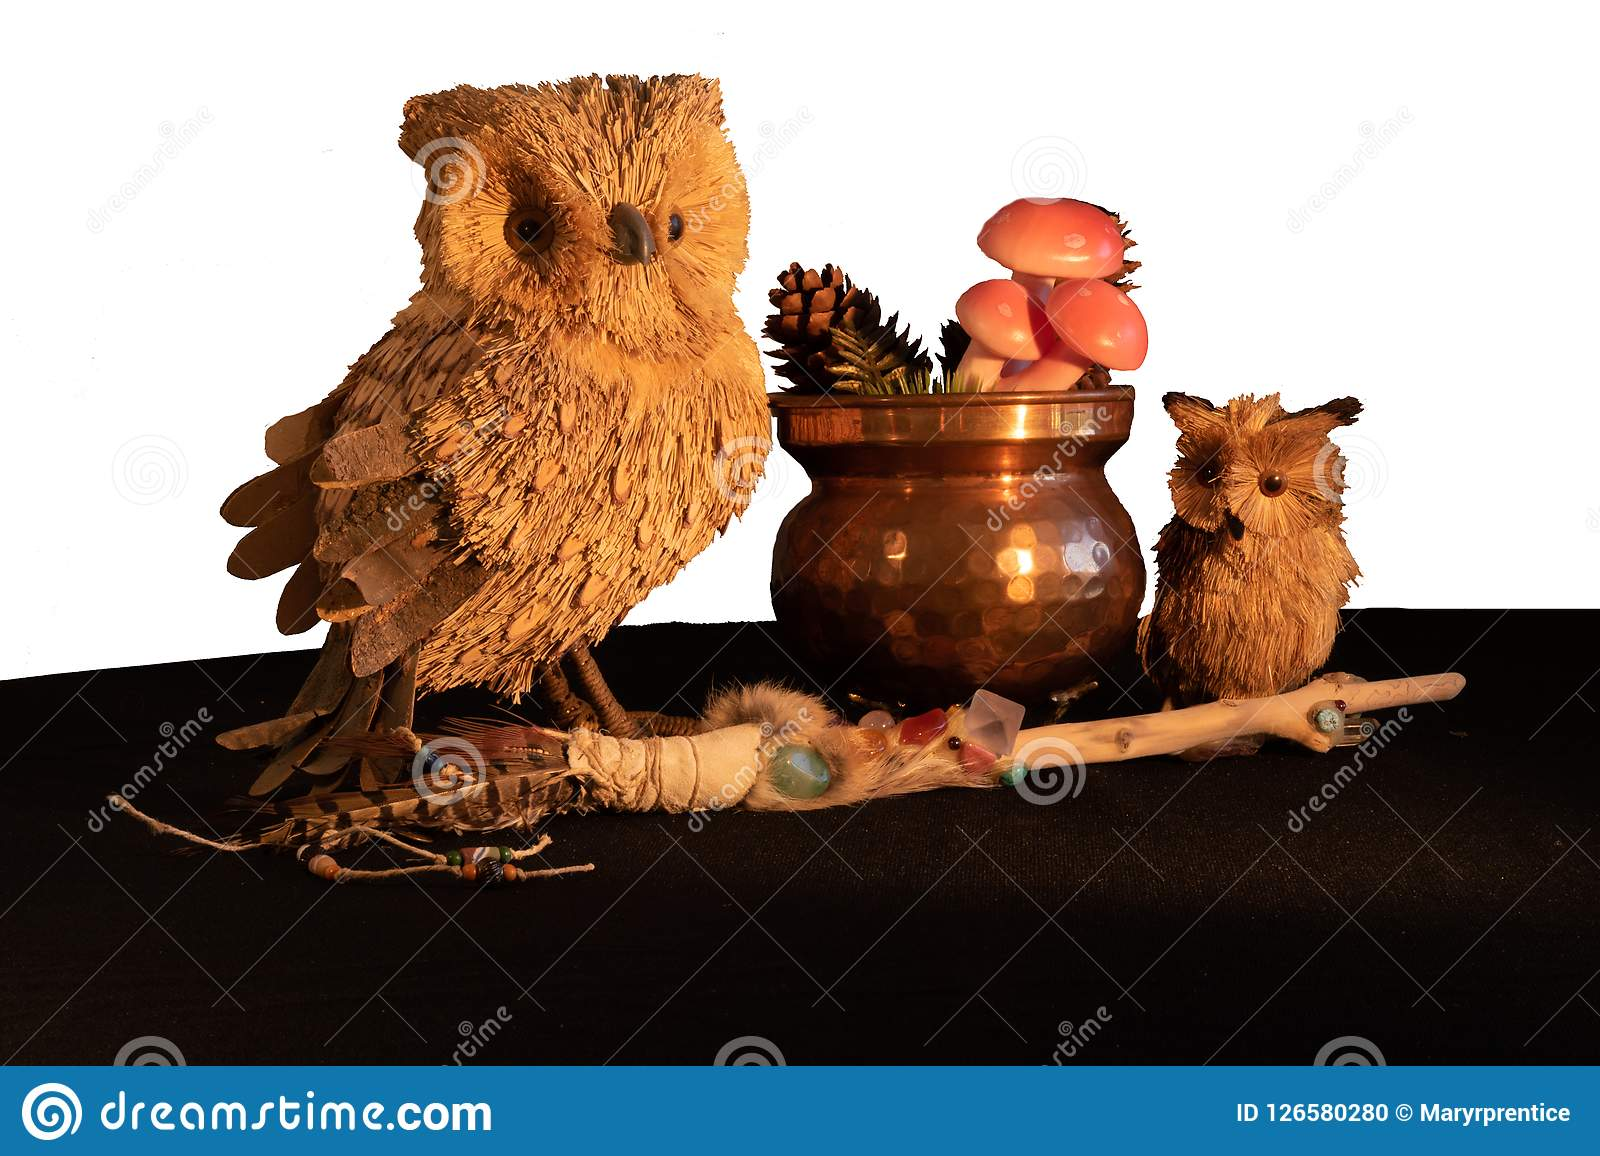 Copper cauldron with mushrooms and pine cones, a magic wand with quartz and amethyst crystals and an owl mother and child made fro